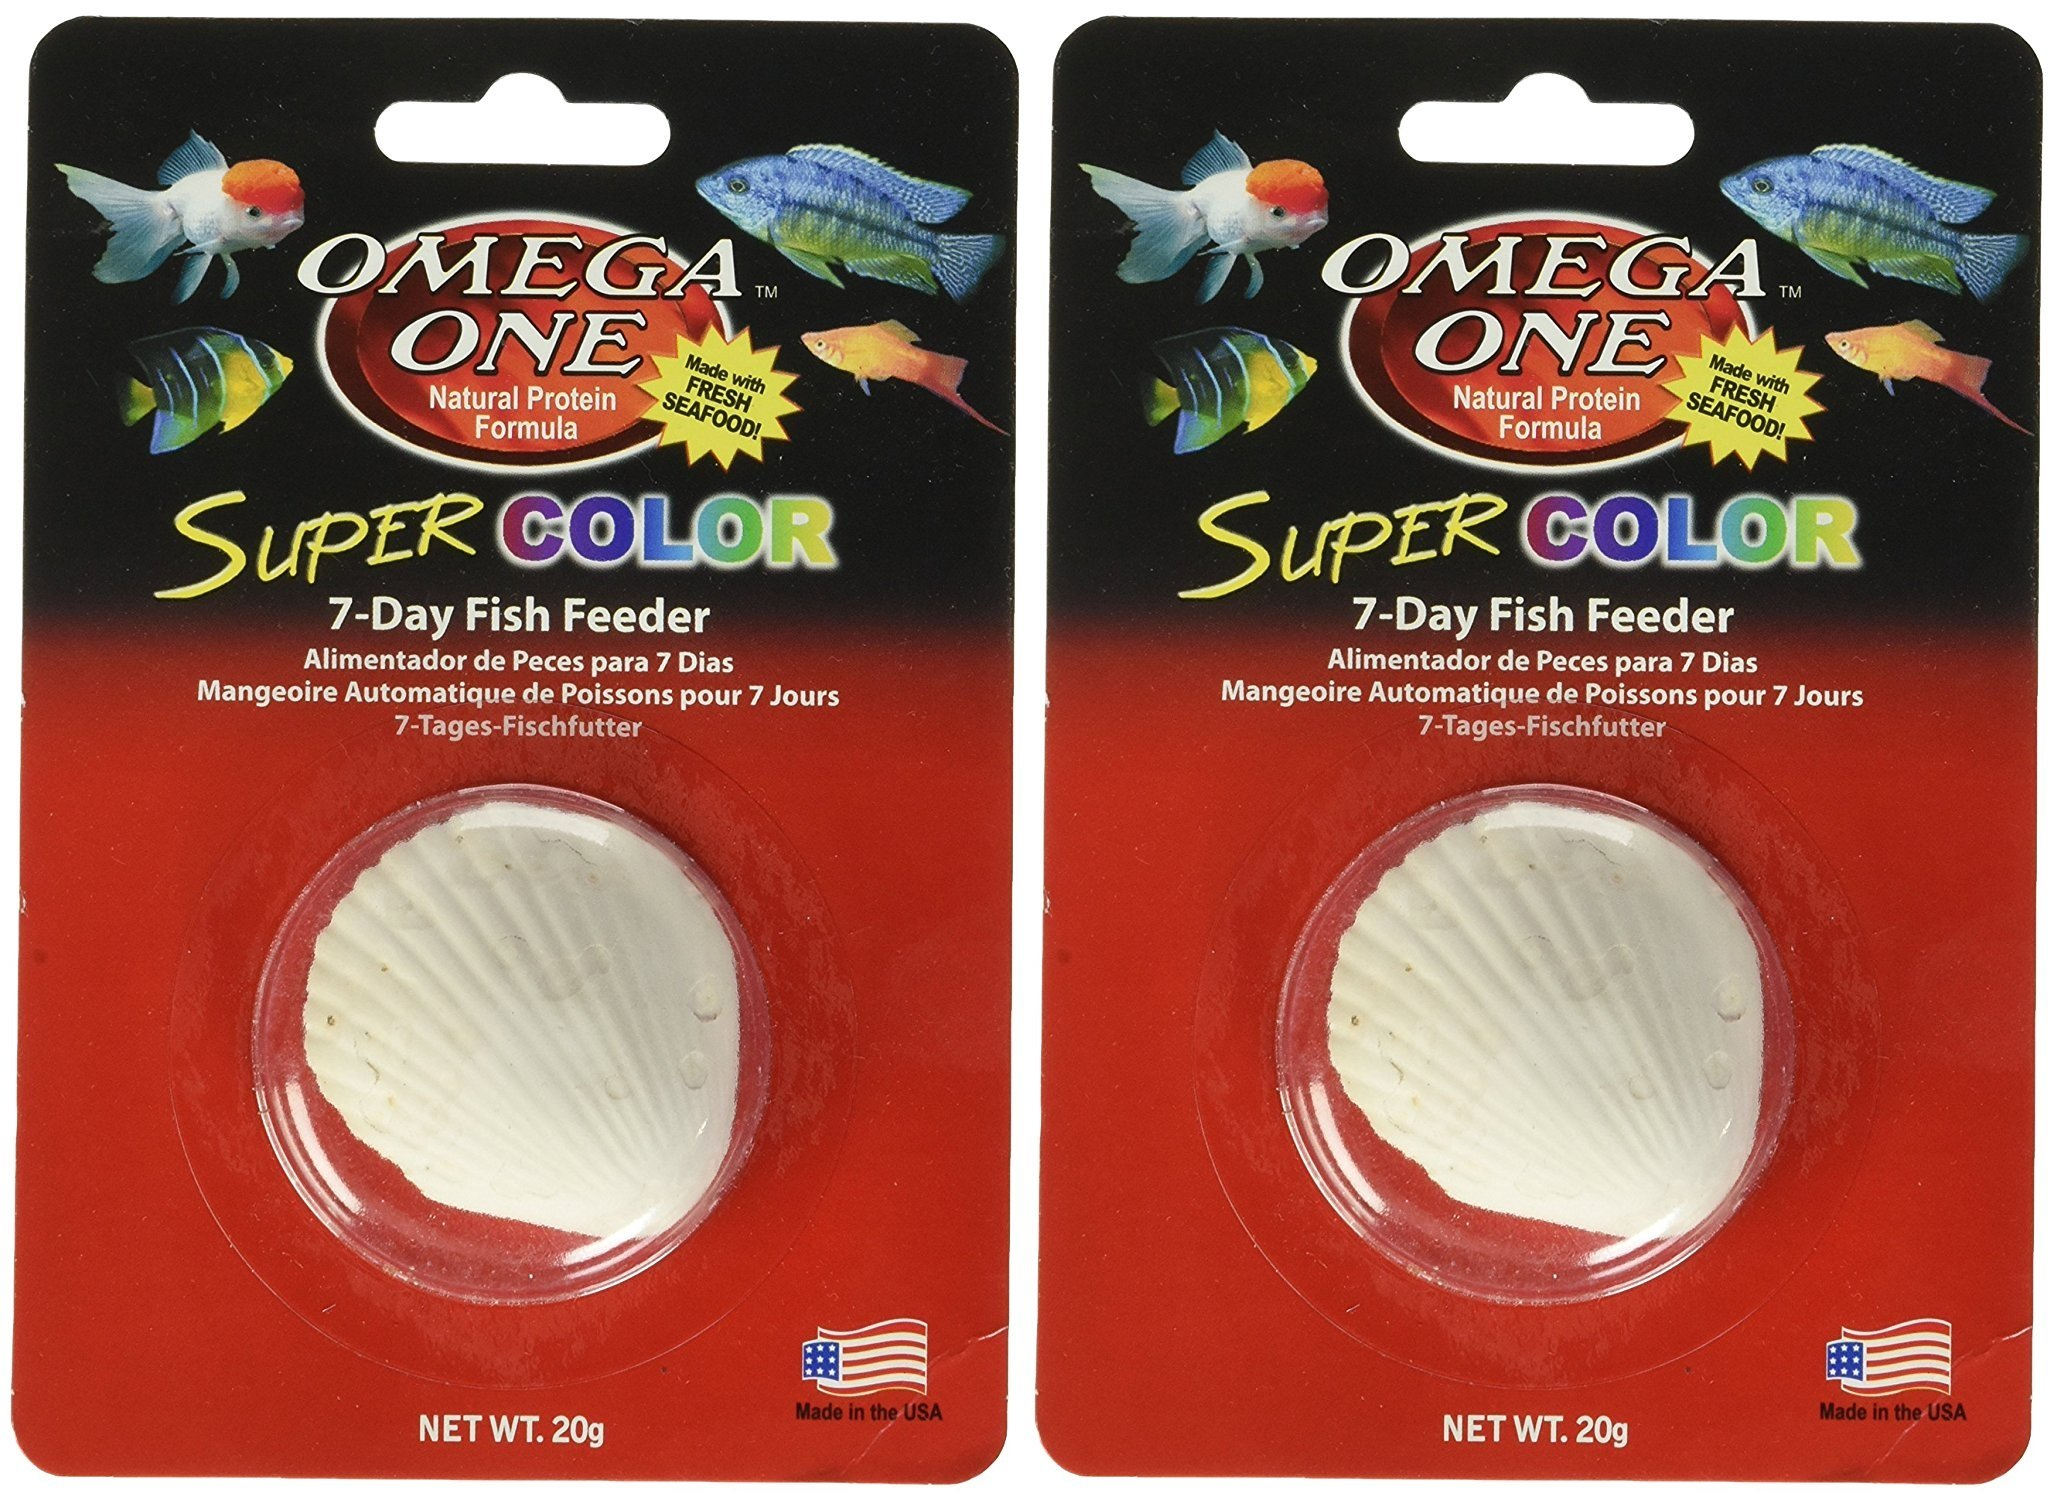 Omega One Super Color 7-Day Vacation Fish Feeders